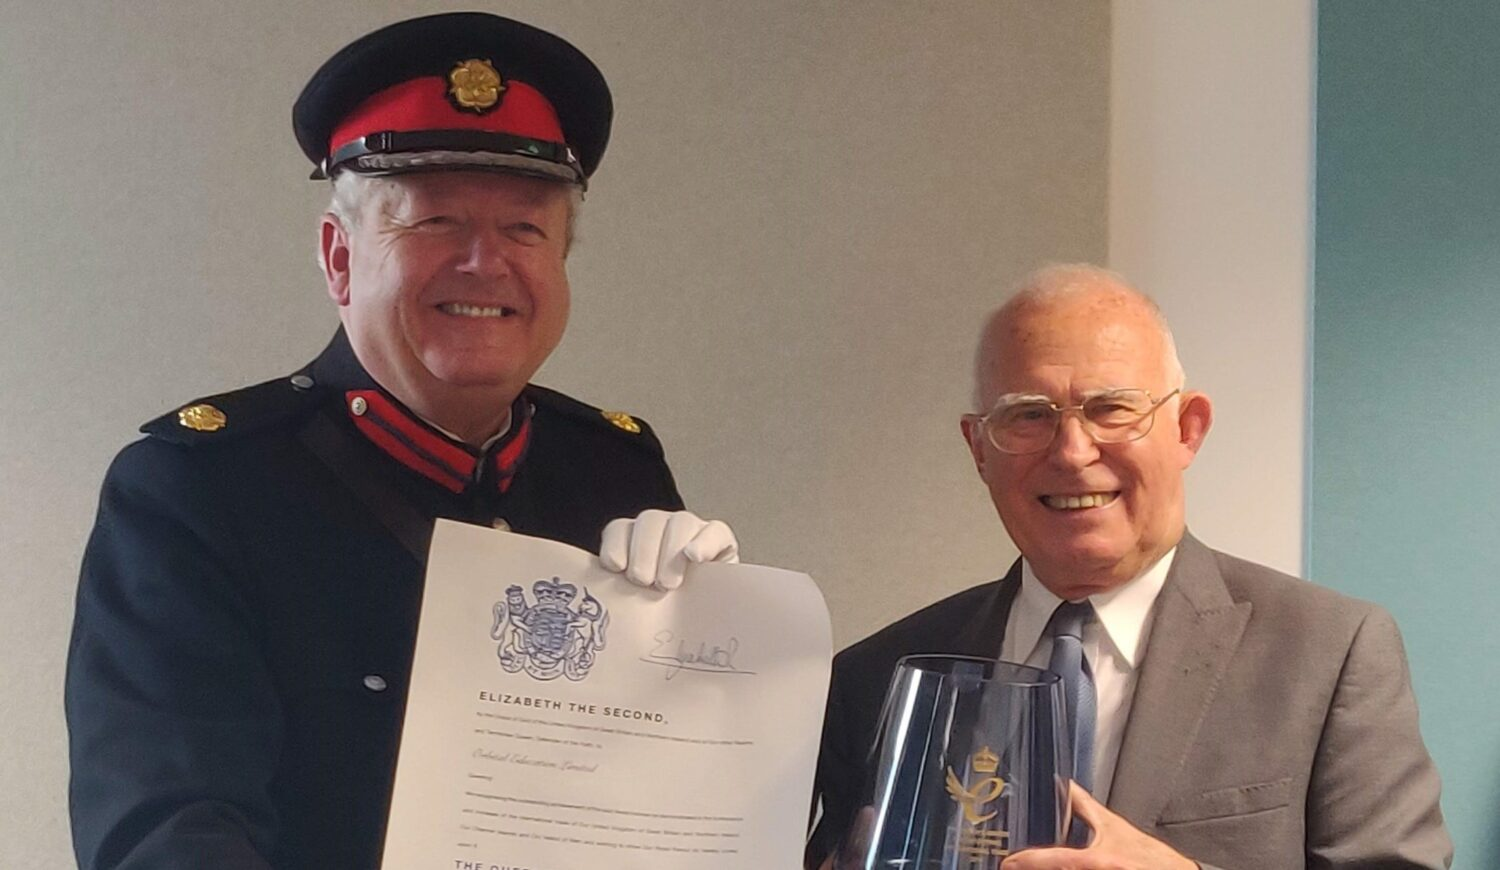 Kevin Mc Neany accepted the Queens Award